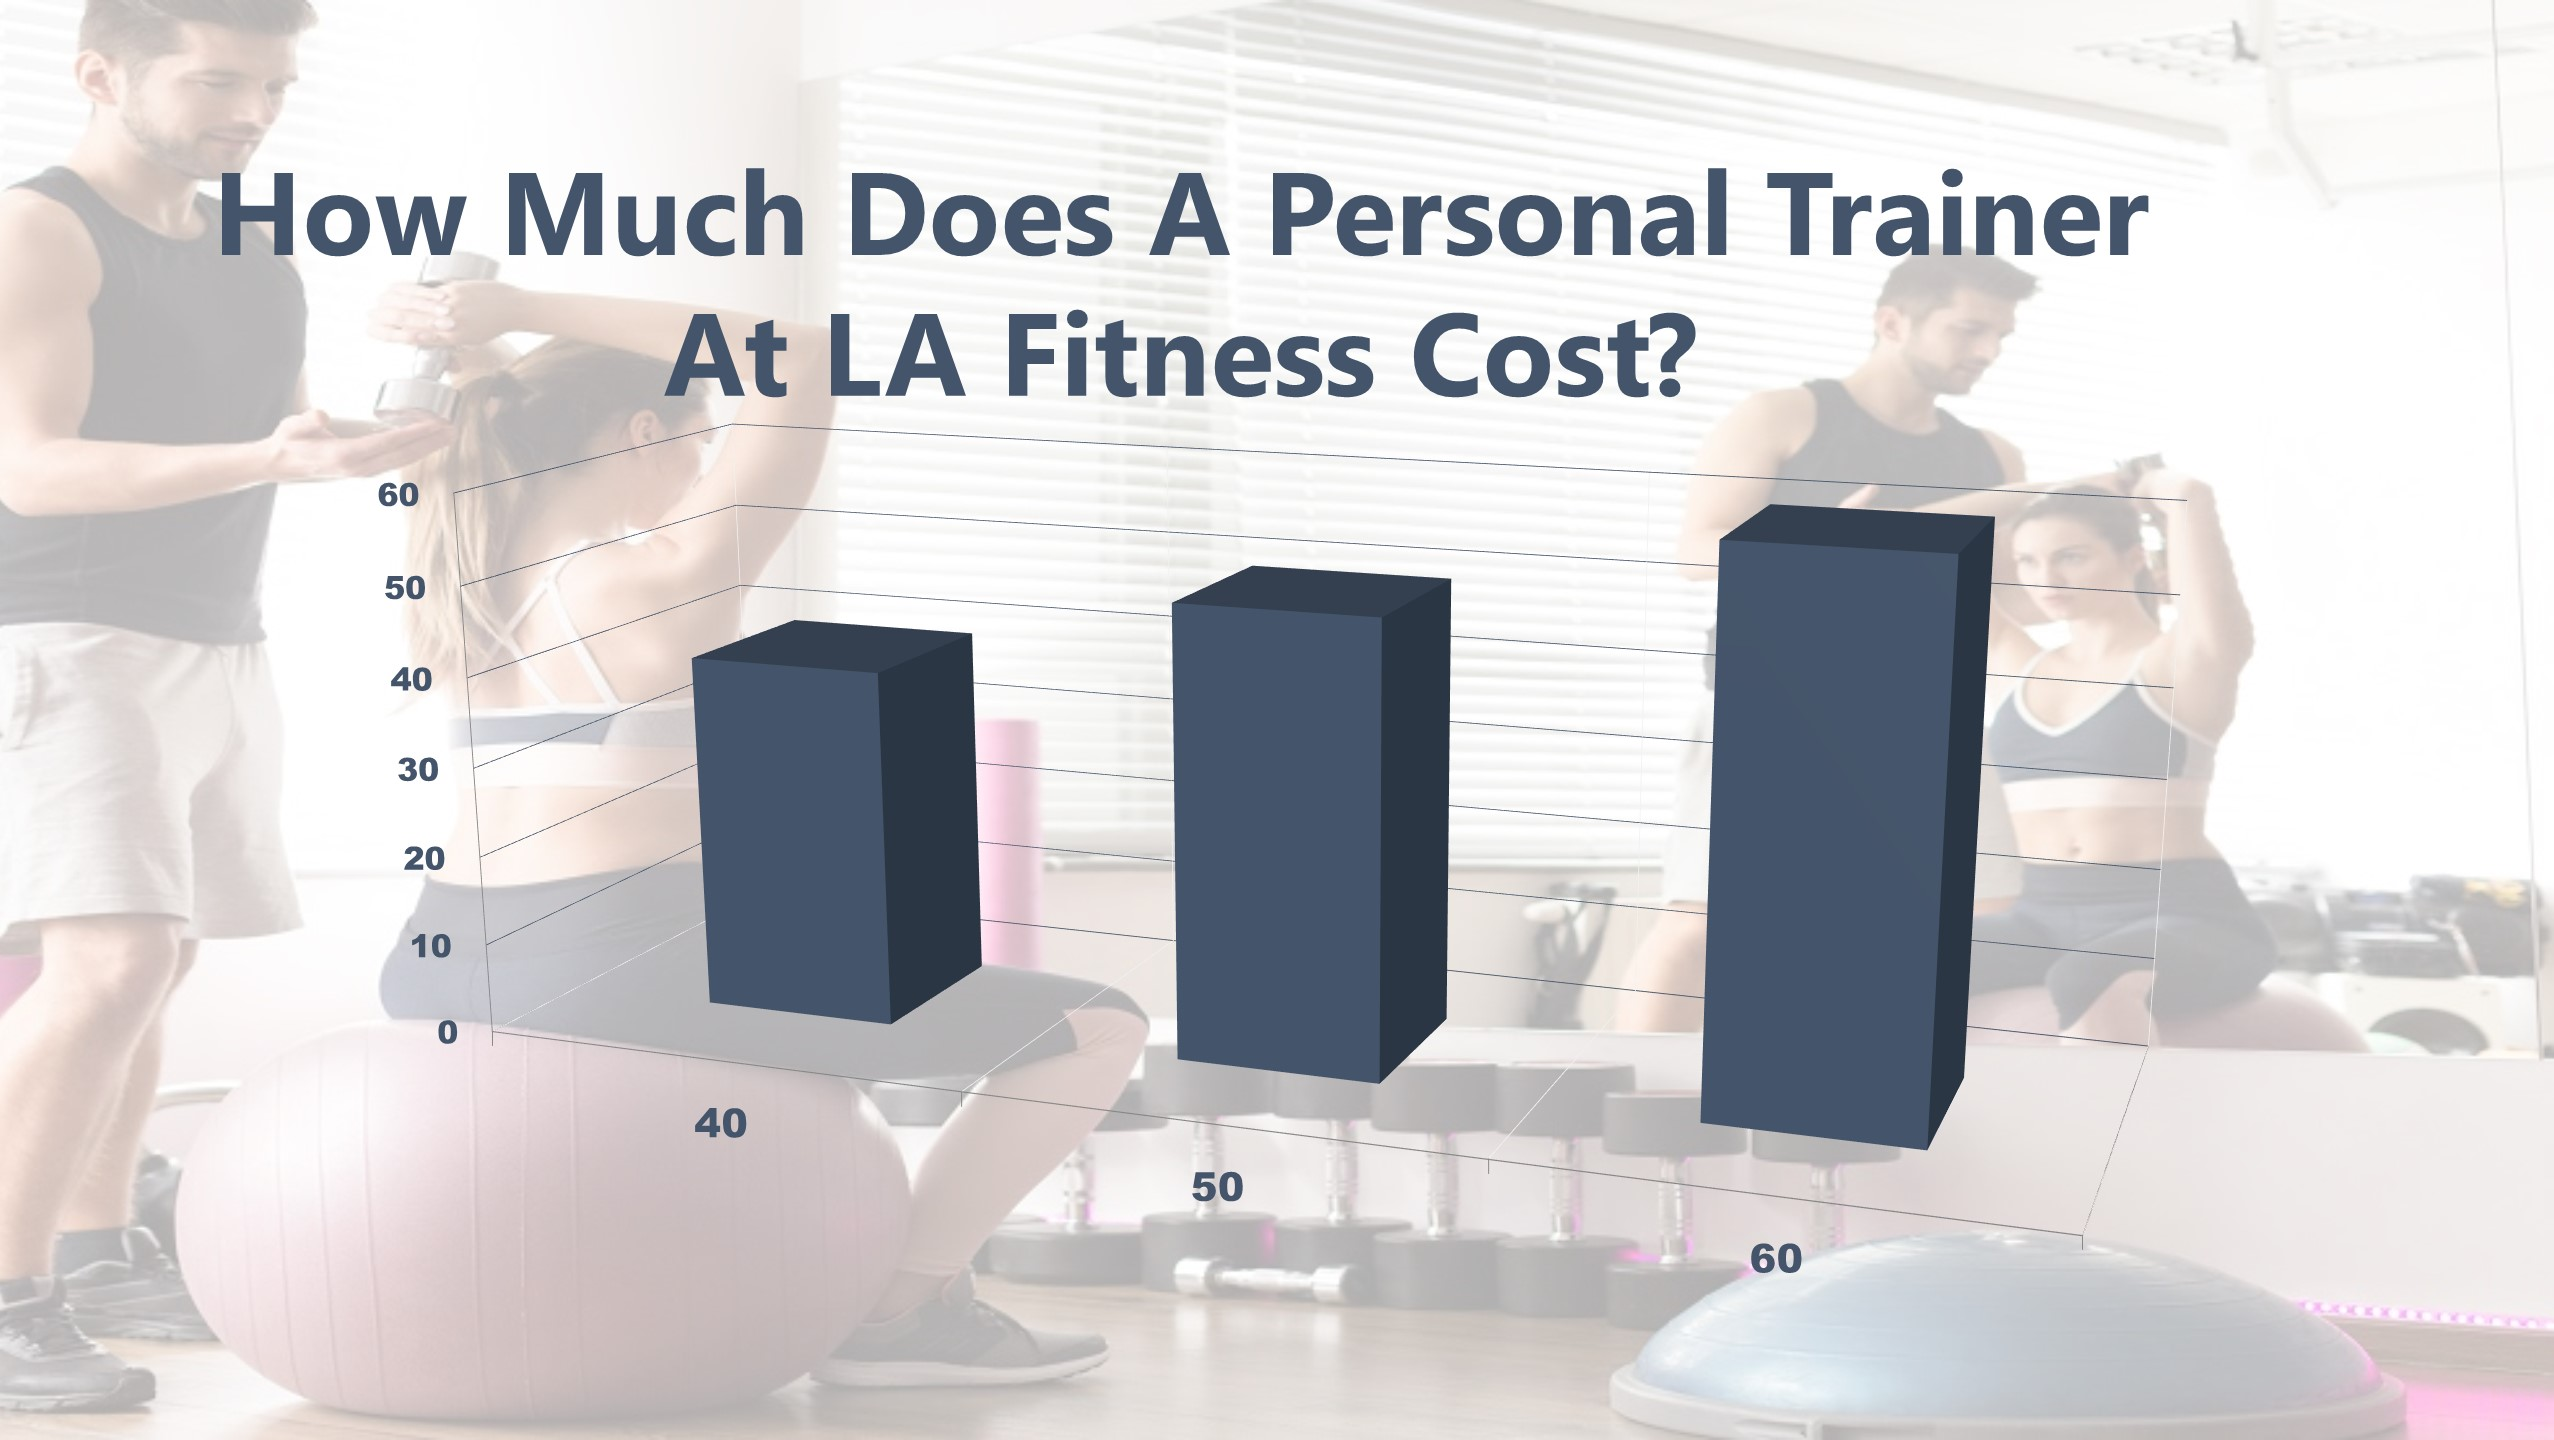 How Much Does A Personal Trainer Cost At LA Fitness Cost